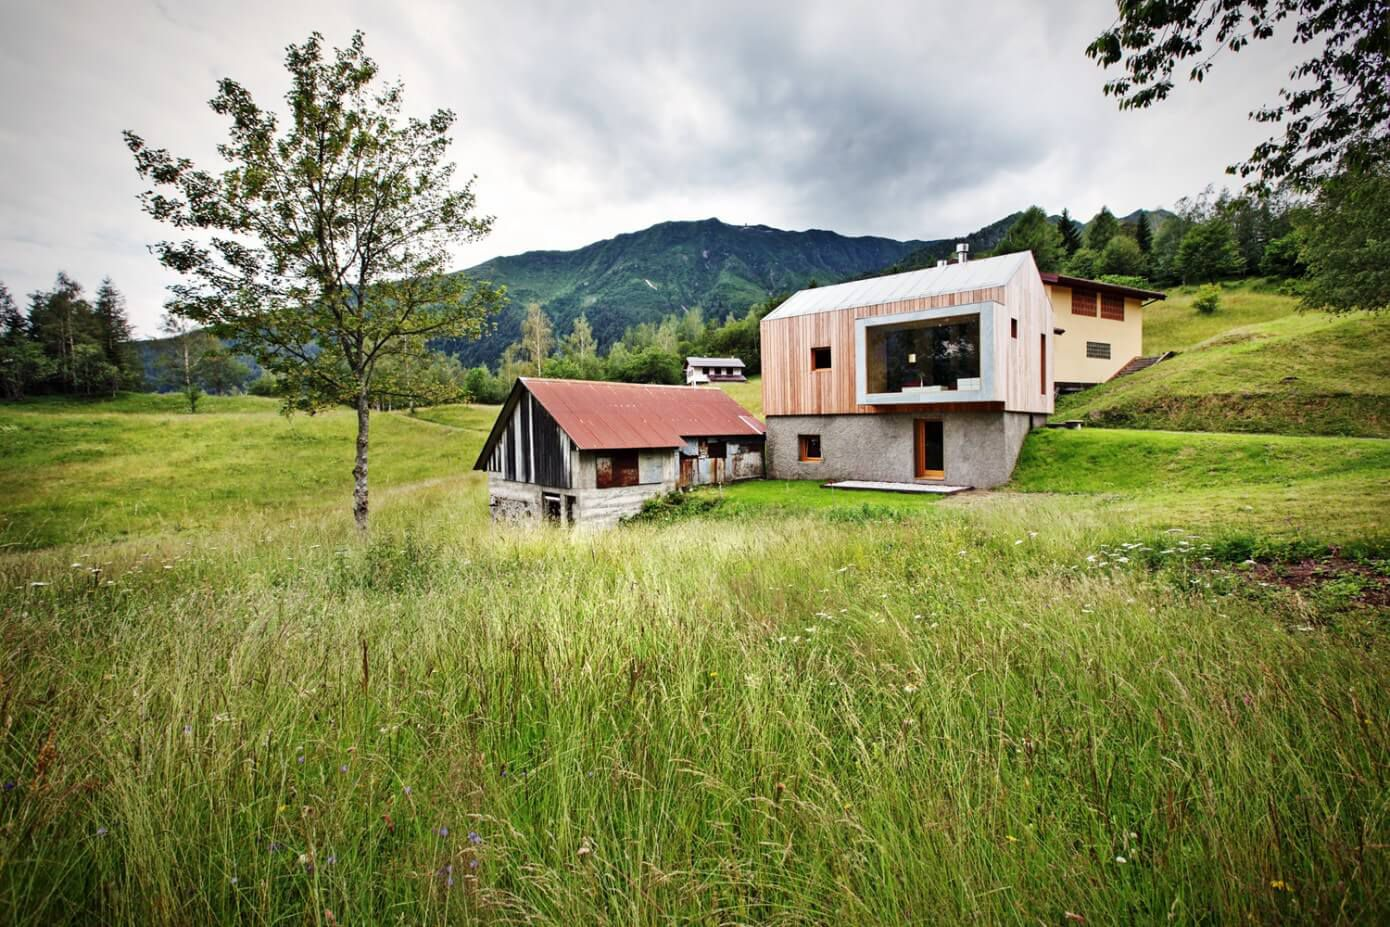 building with a contemporary character and the mountains in the surrounding landscape